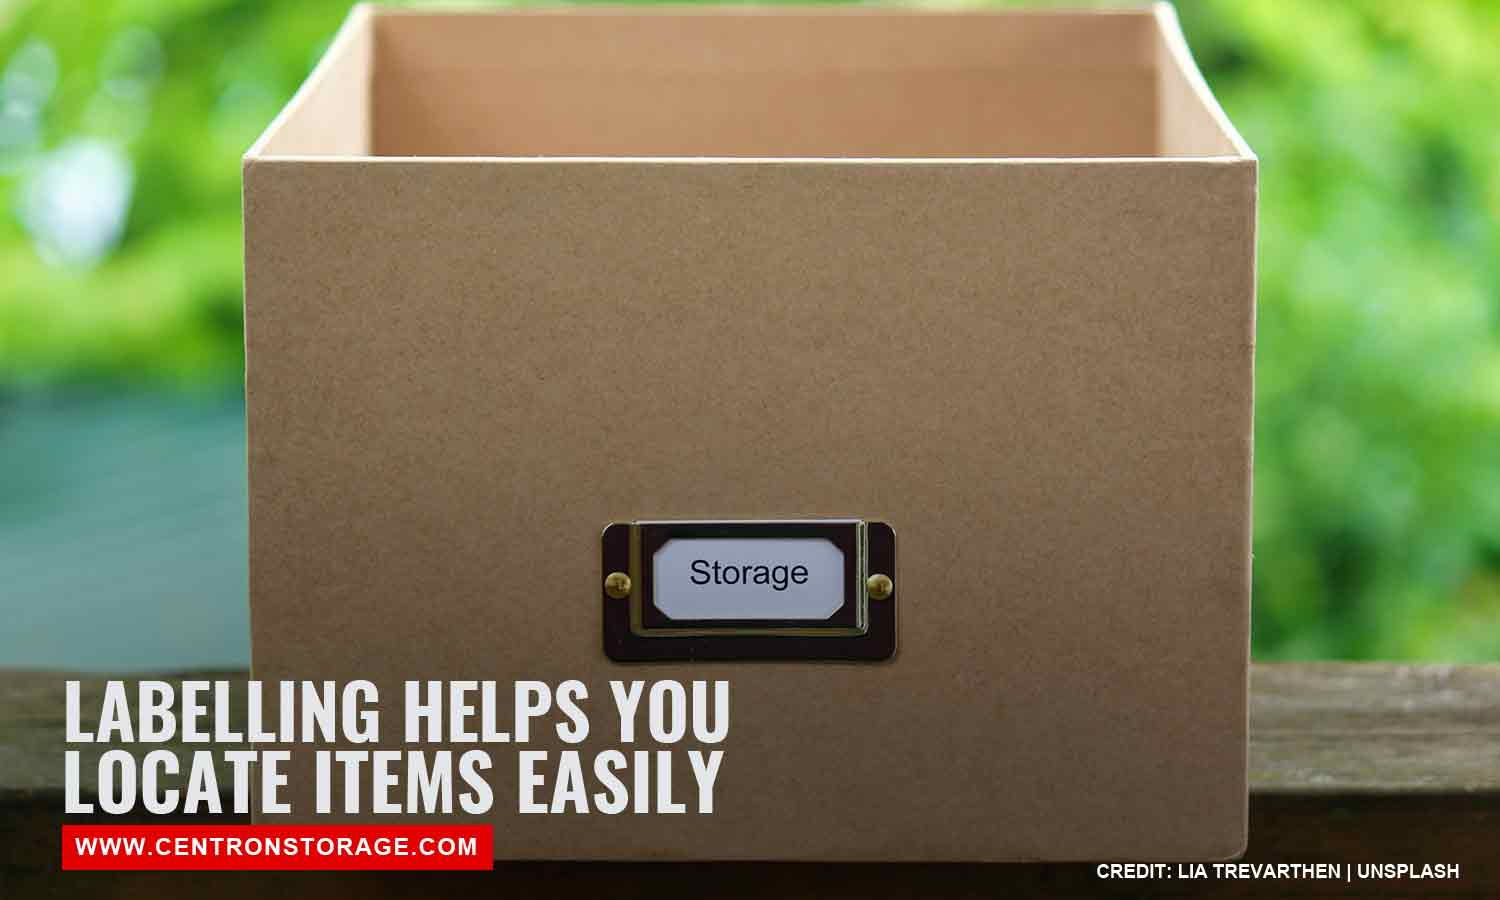 Labelling helps you locate items easily